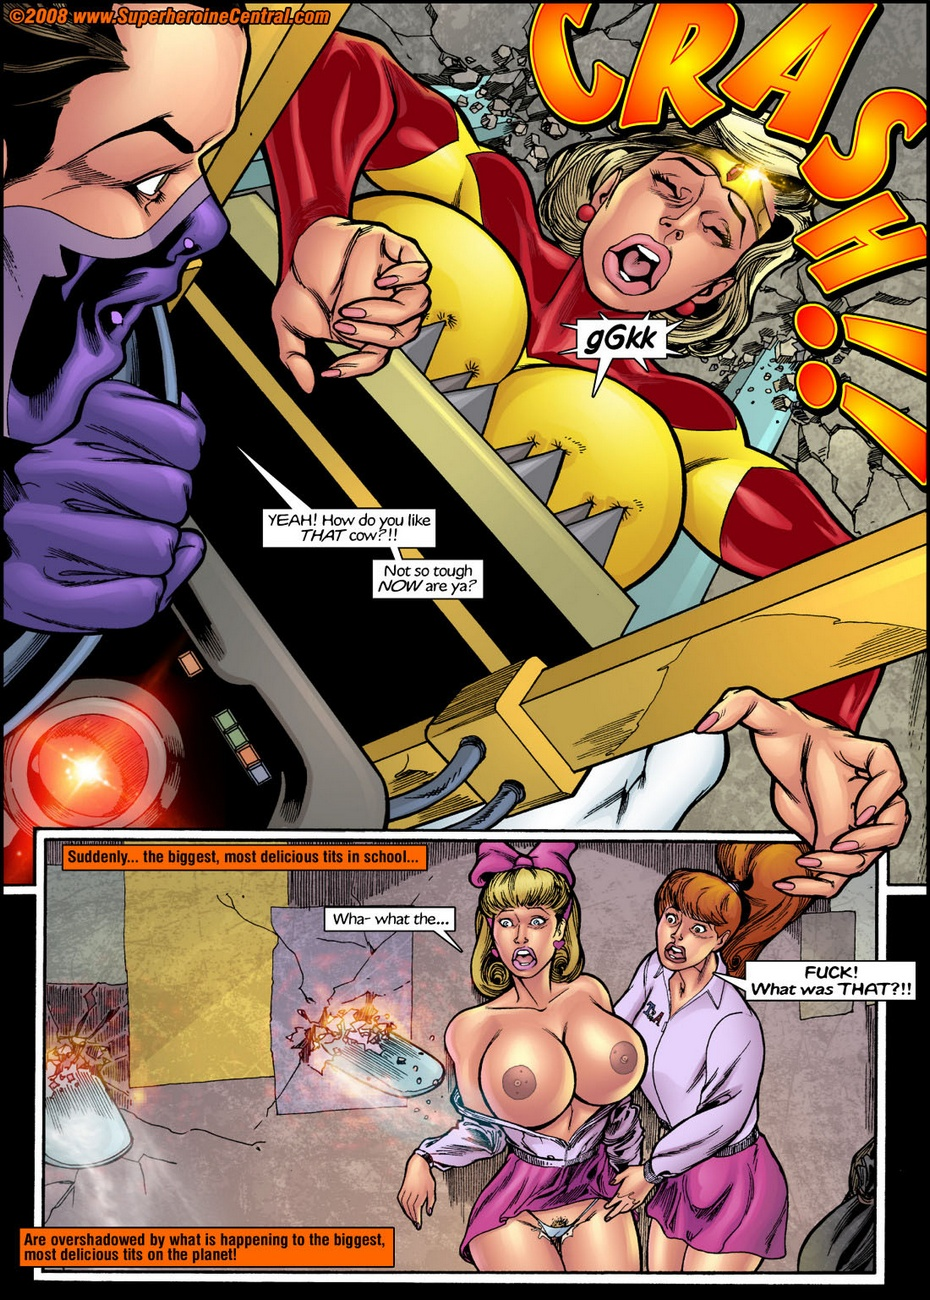 Mighty Girl 1 - part 2